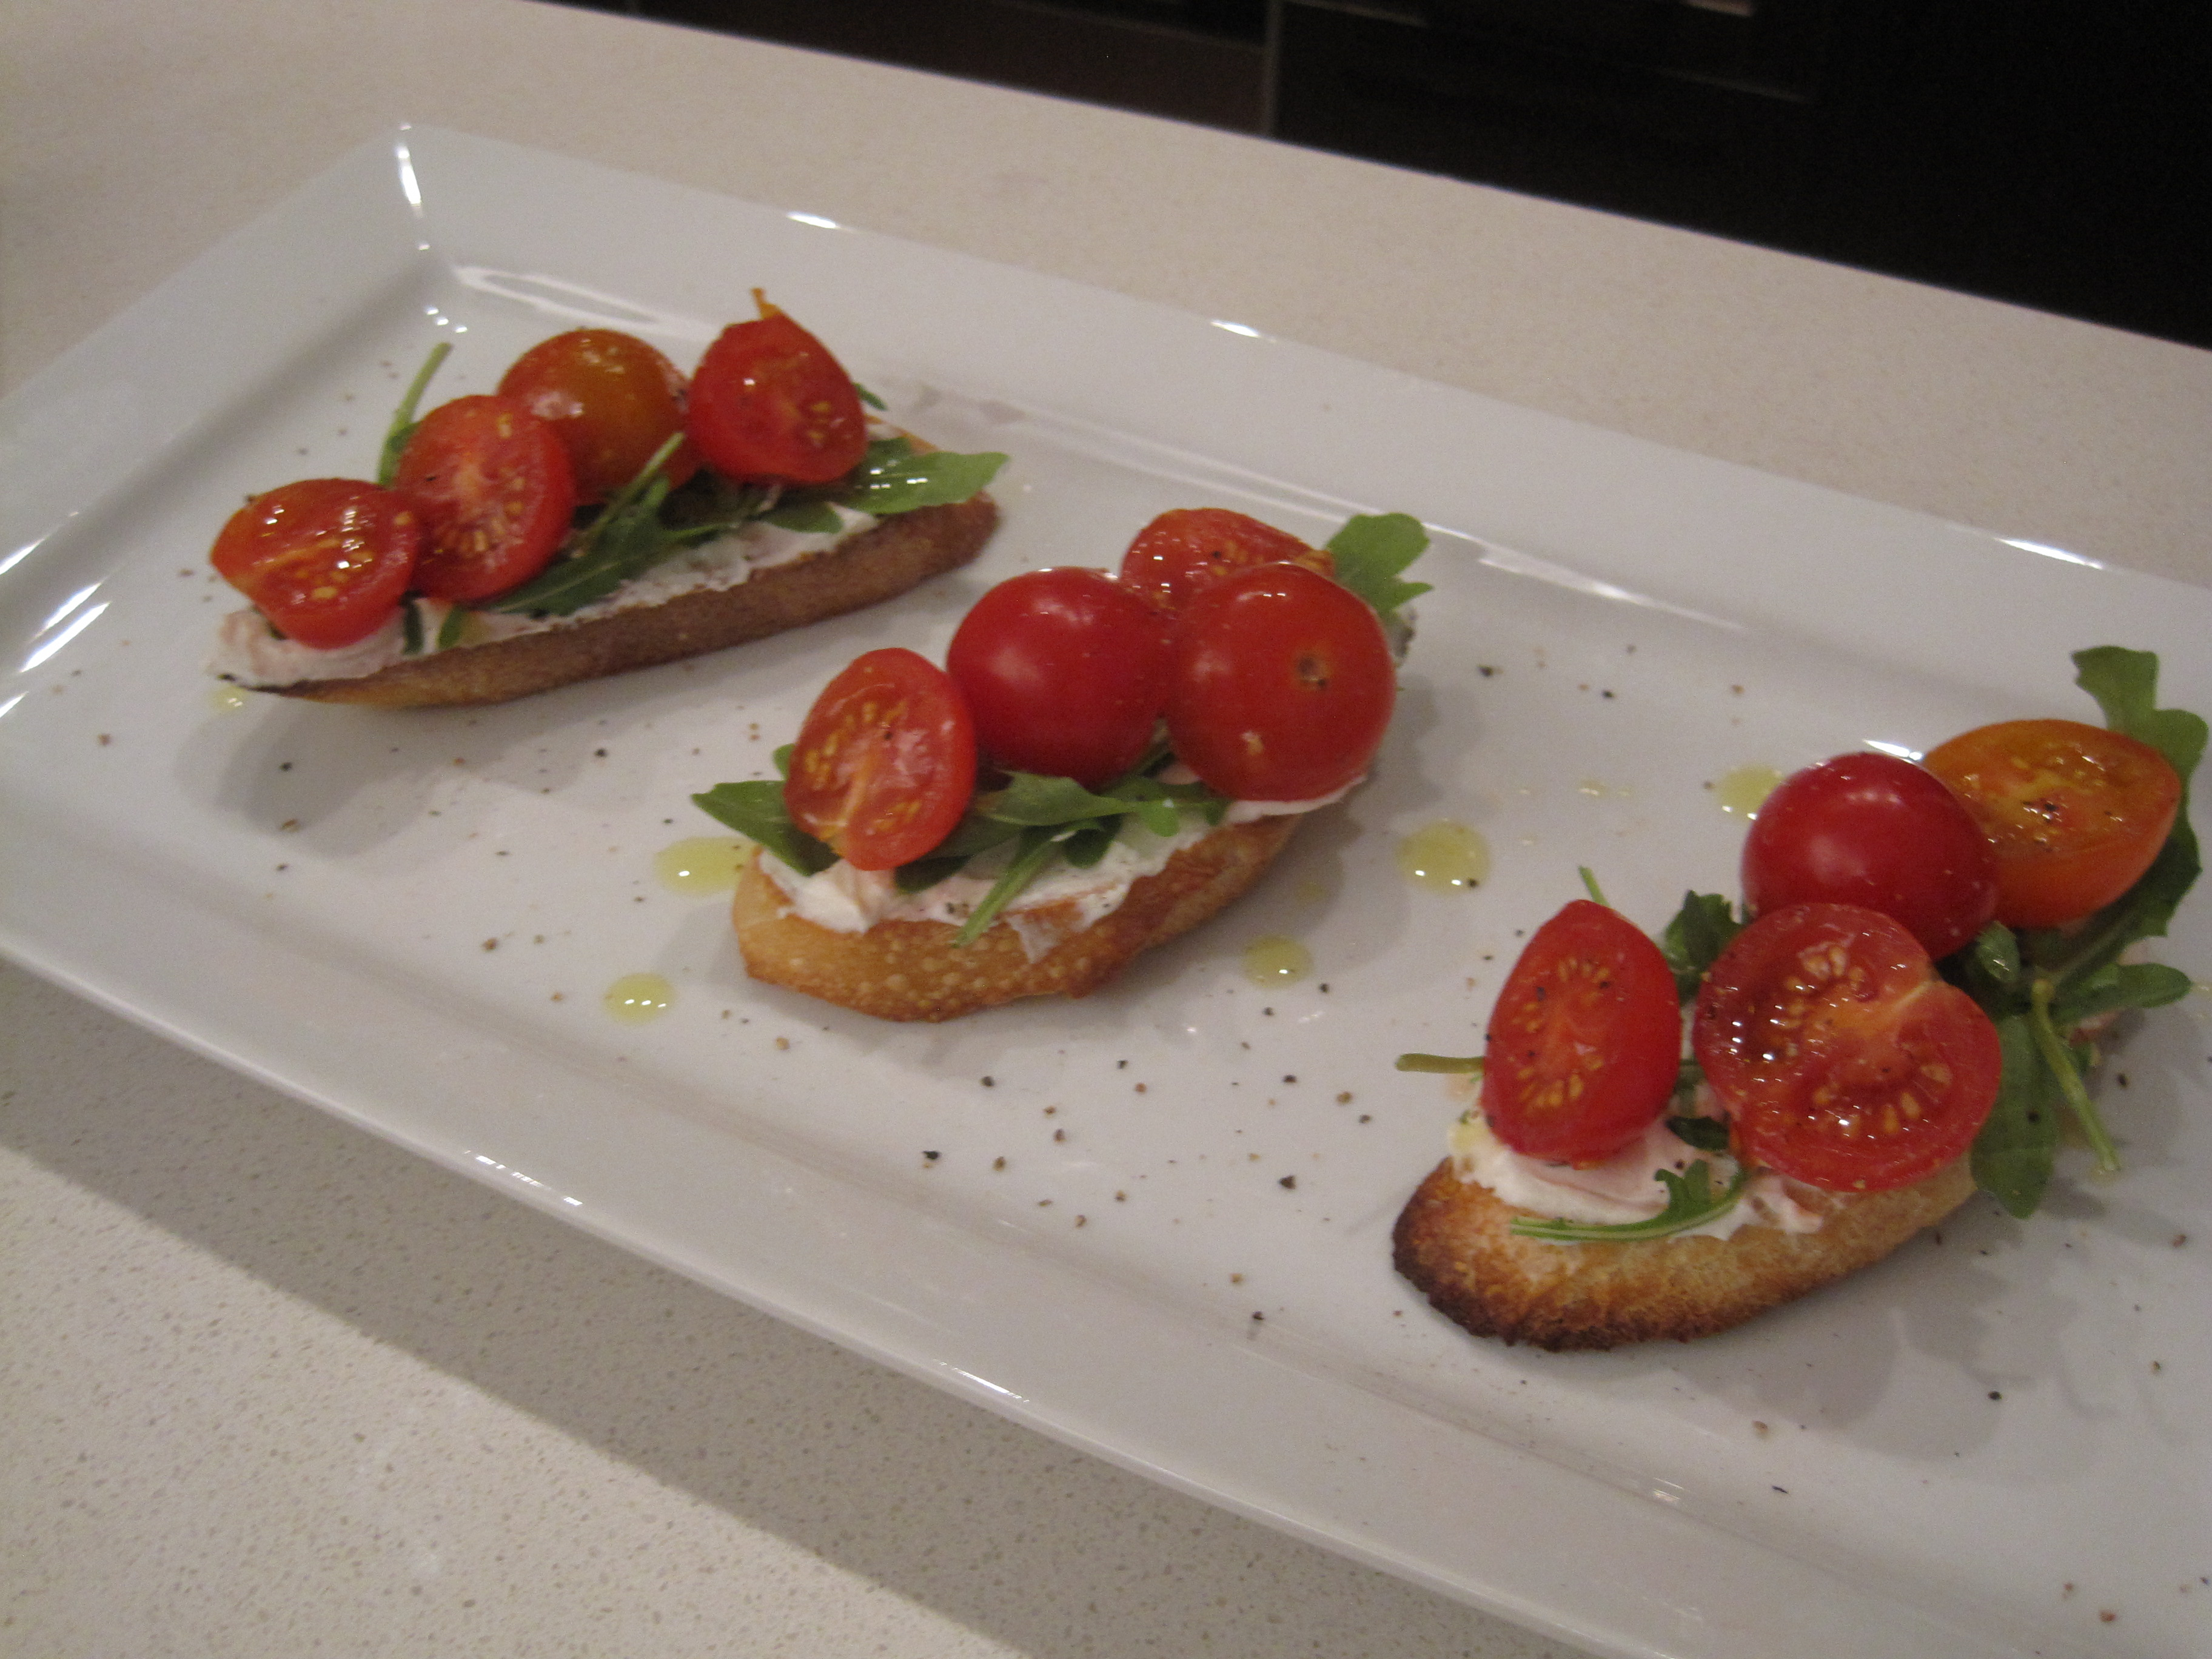 Ricotta and Tomato on Toast or Crostini | Cooking with Alison